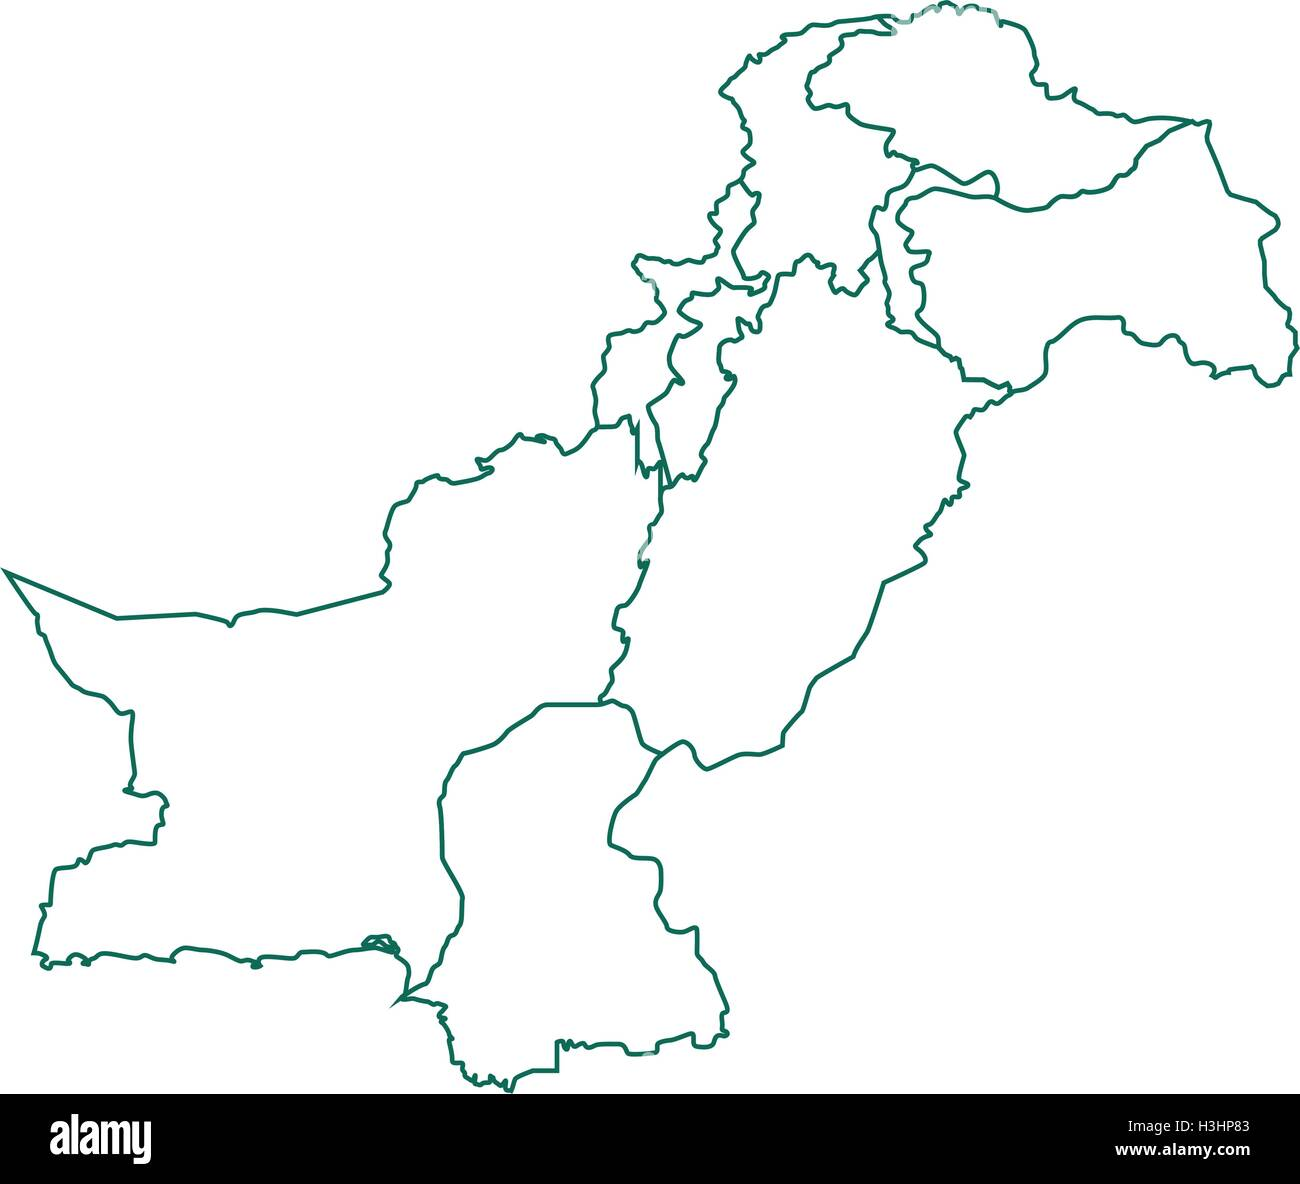 Pakistan Map With All States And Provinces Stock Vector